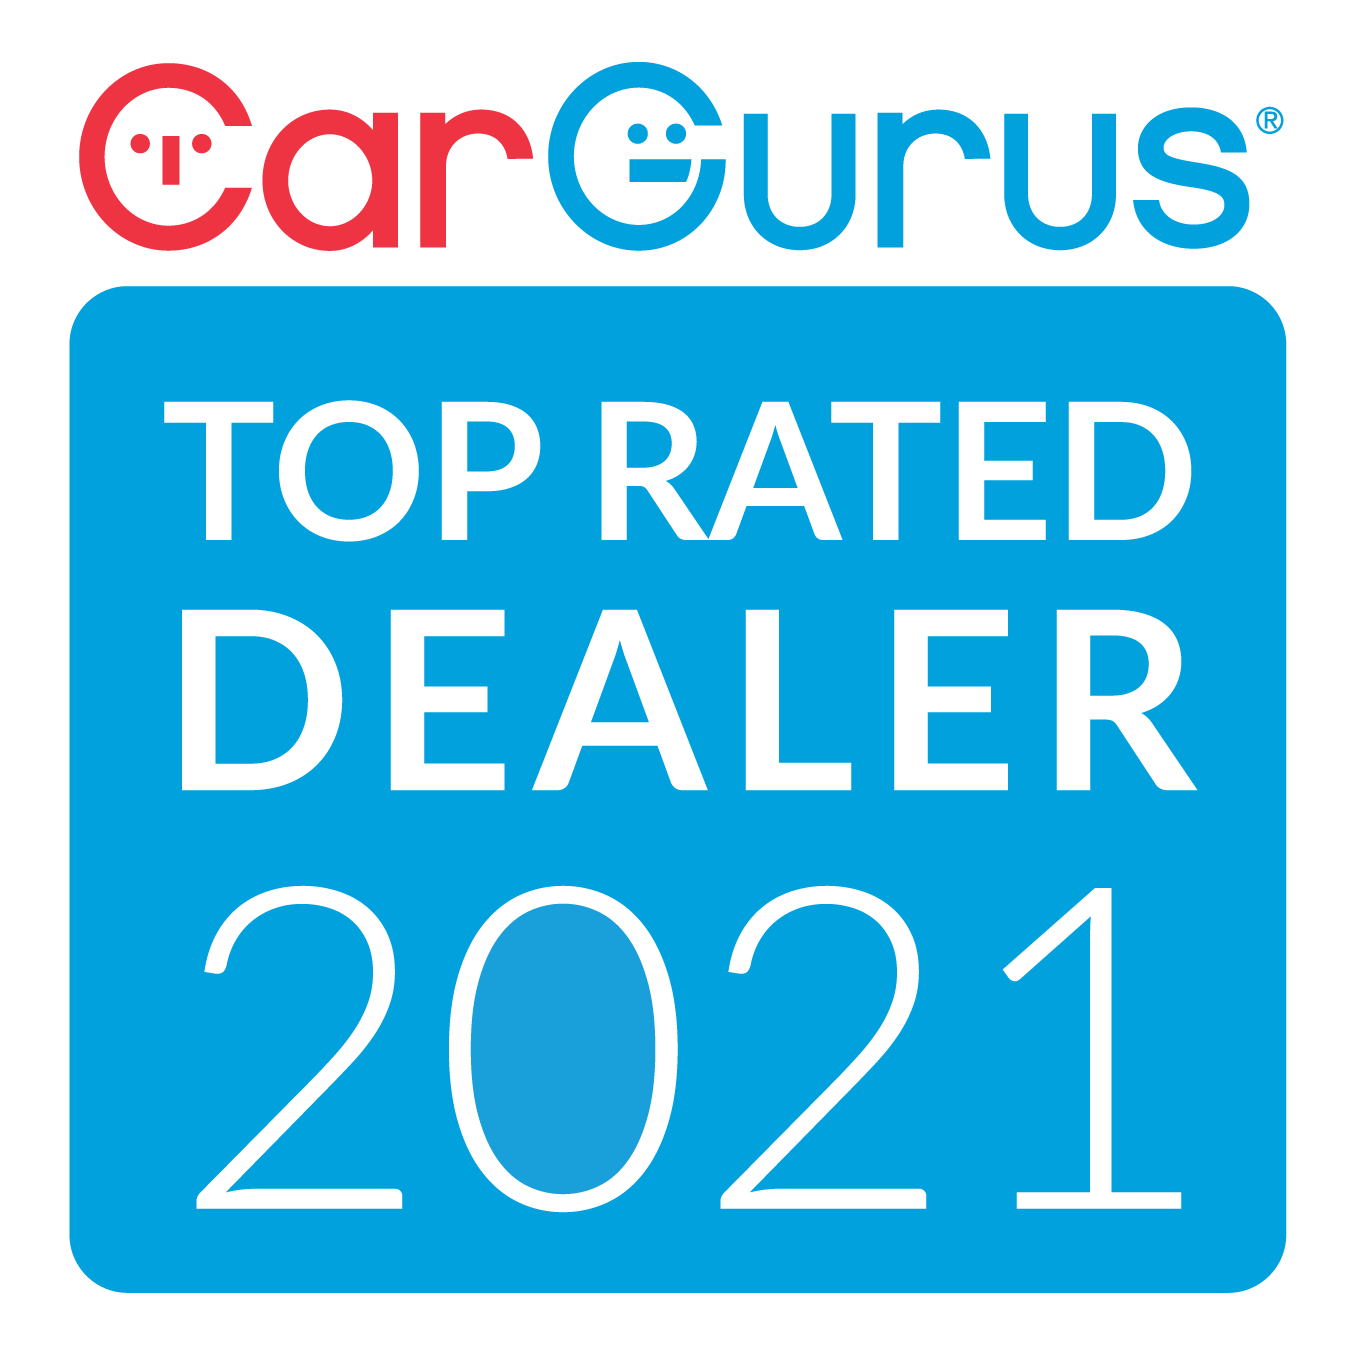 Car Guru's top rated dealer